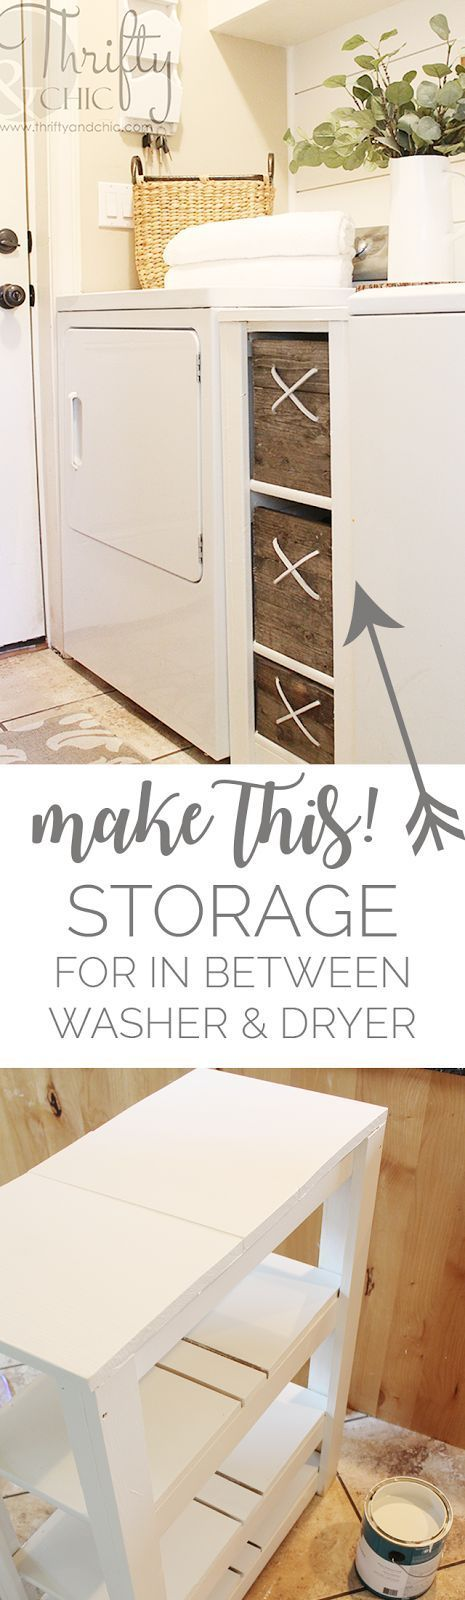 DIY in between washer and dryer storage cabinet for the laundry room | Small laundry room organization and storage ideas